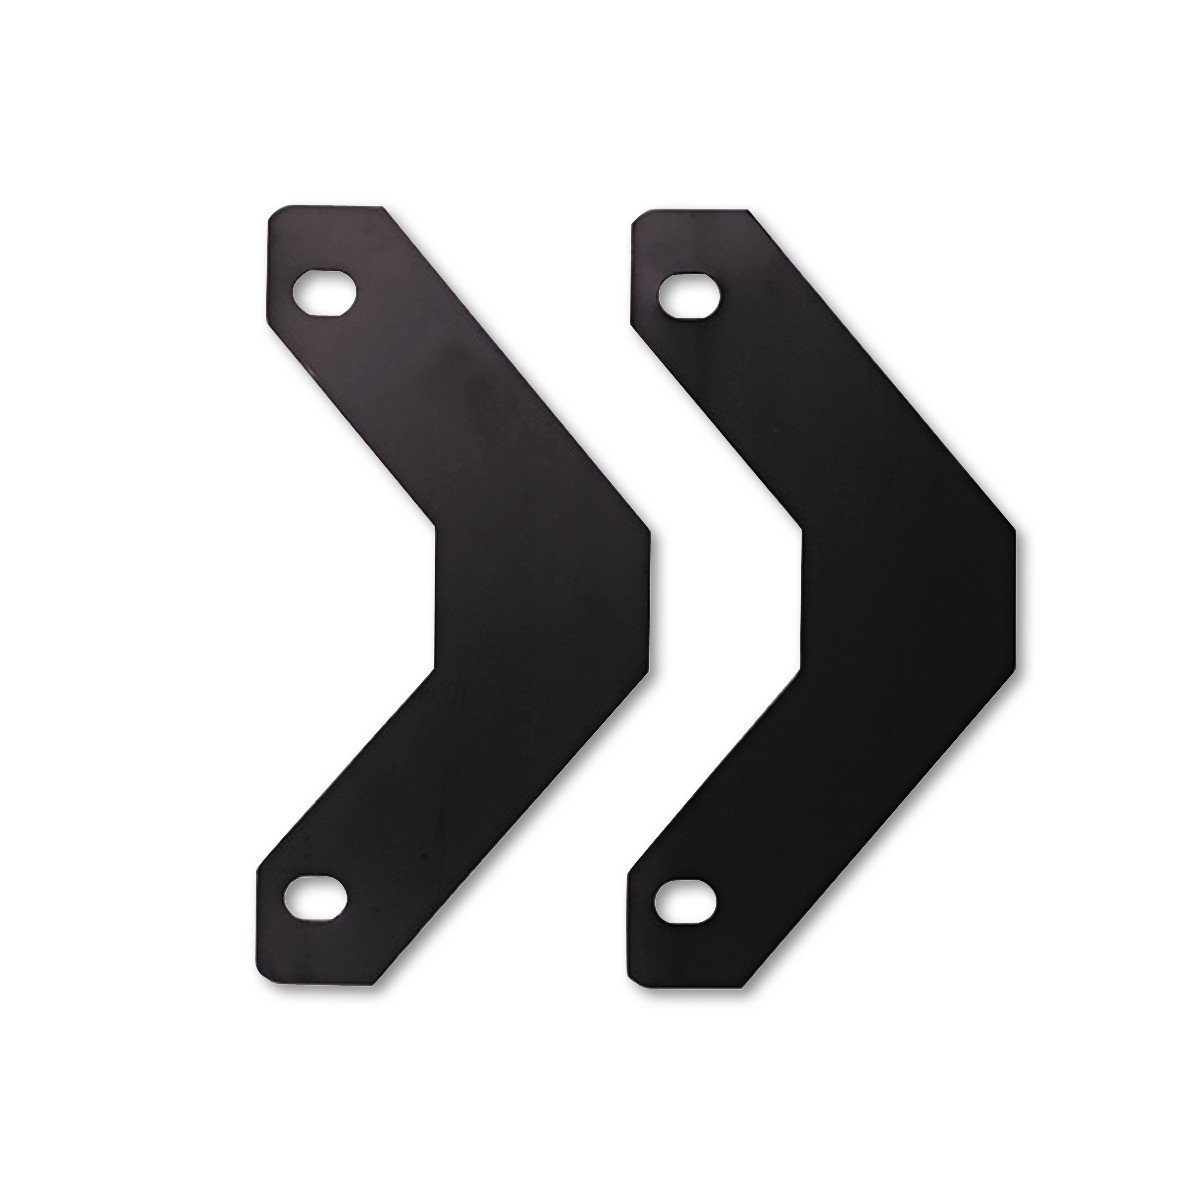 Avery 75225 Triangle Shaped Sheet Lifter for Three-Ring Binder, Black (Pack of 2) by Avery (Image #2)